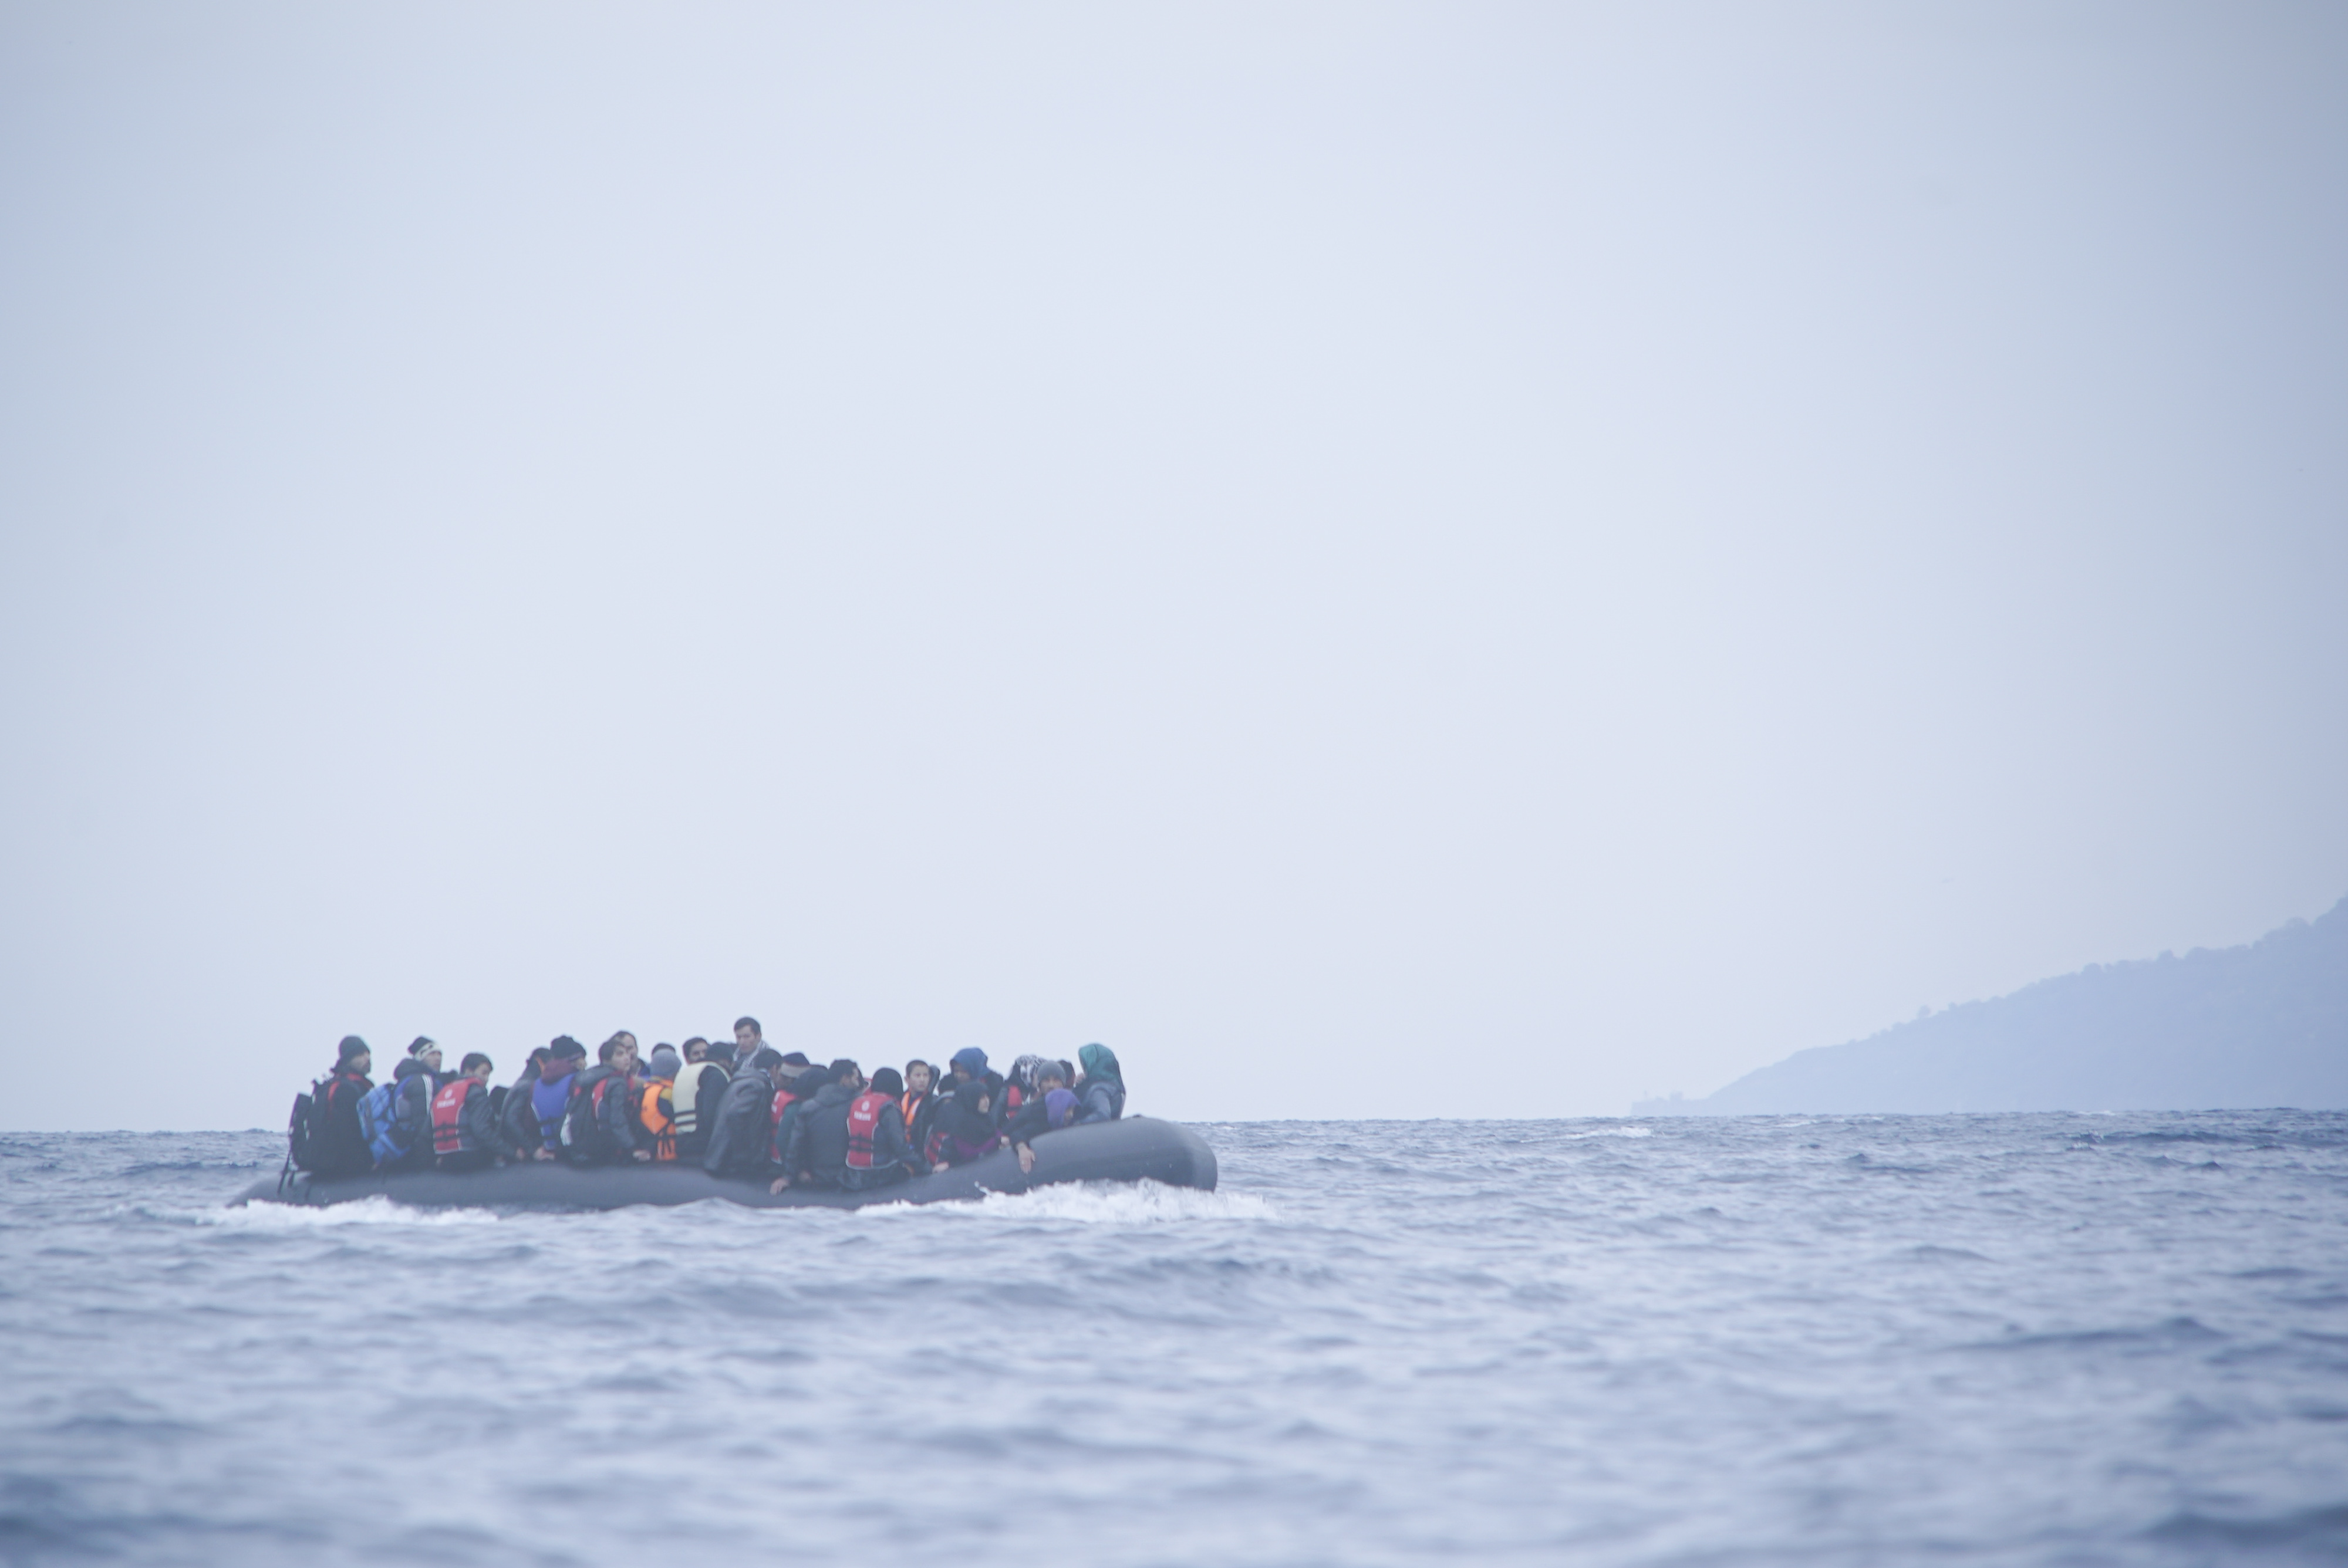 Refugees in a boat on the sea